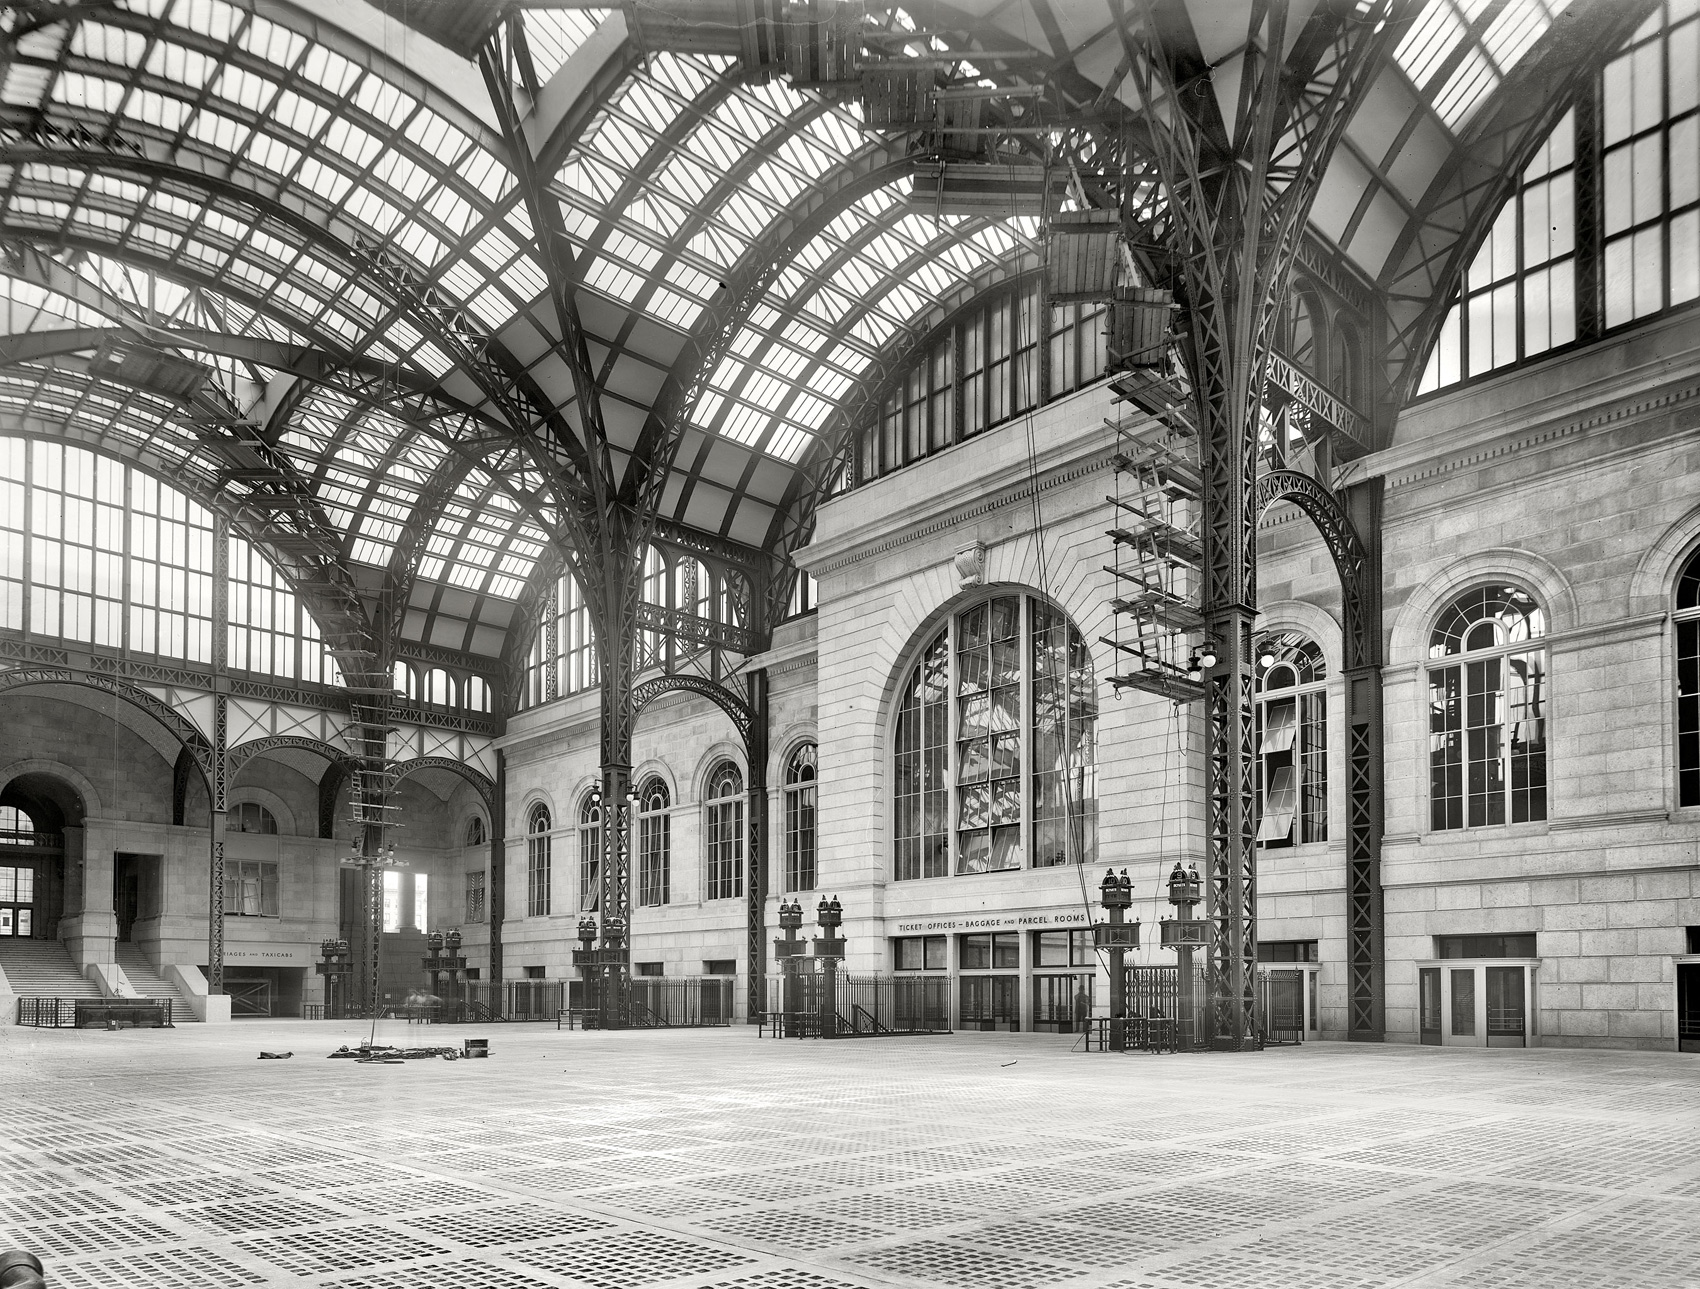 A History Of Pennsylvania Station